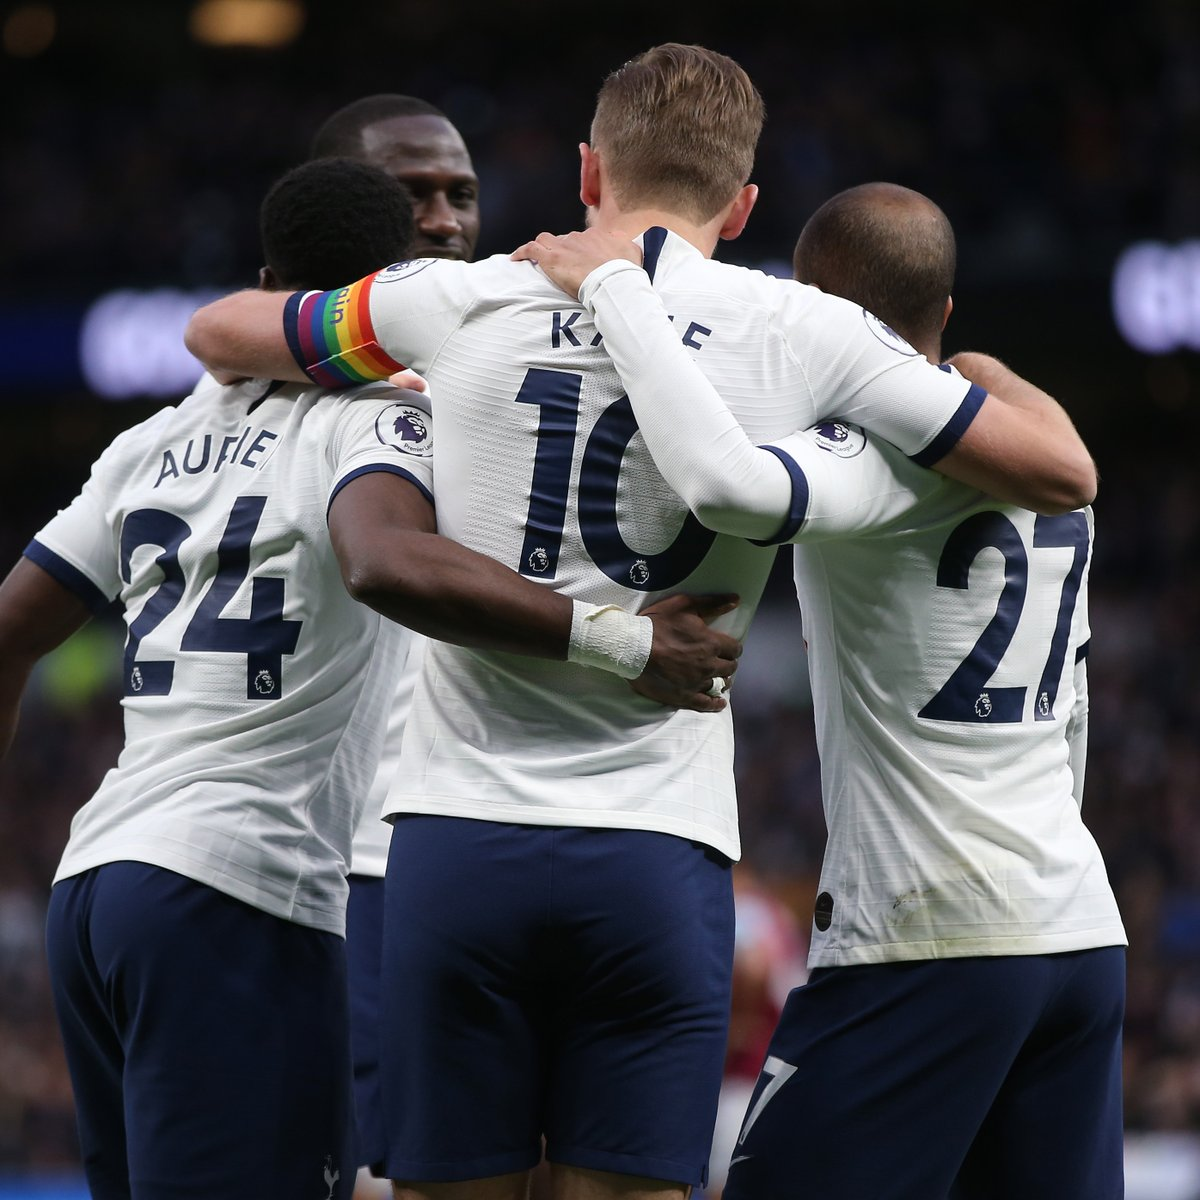 @SpursOfficial's photo on #coys